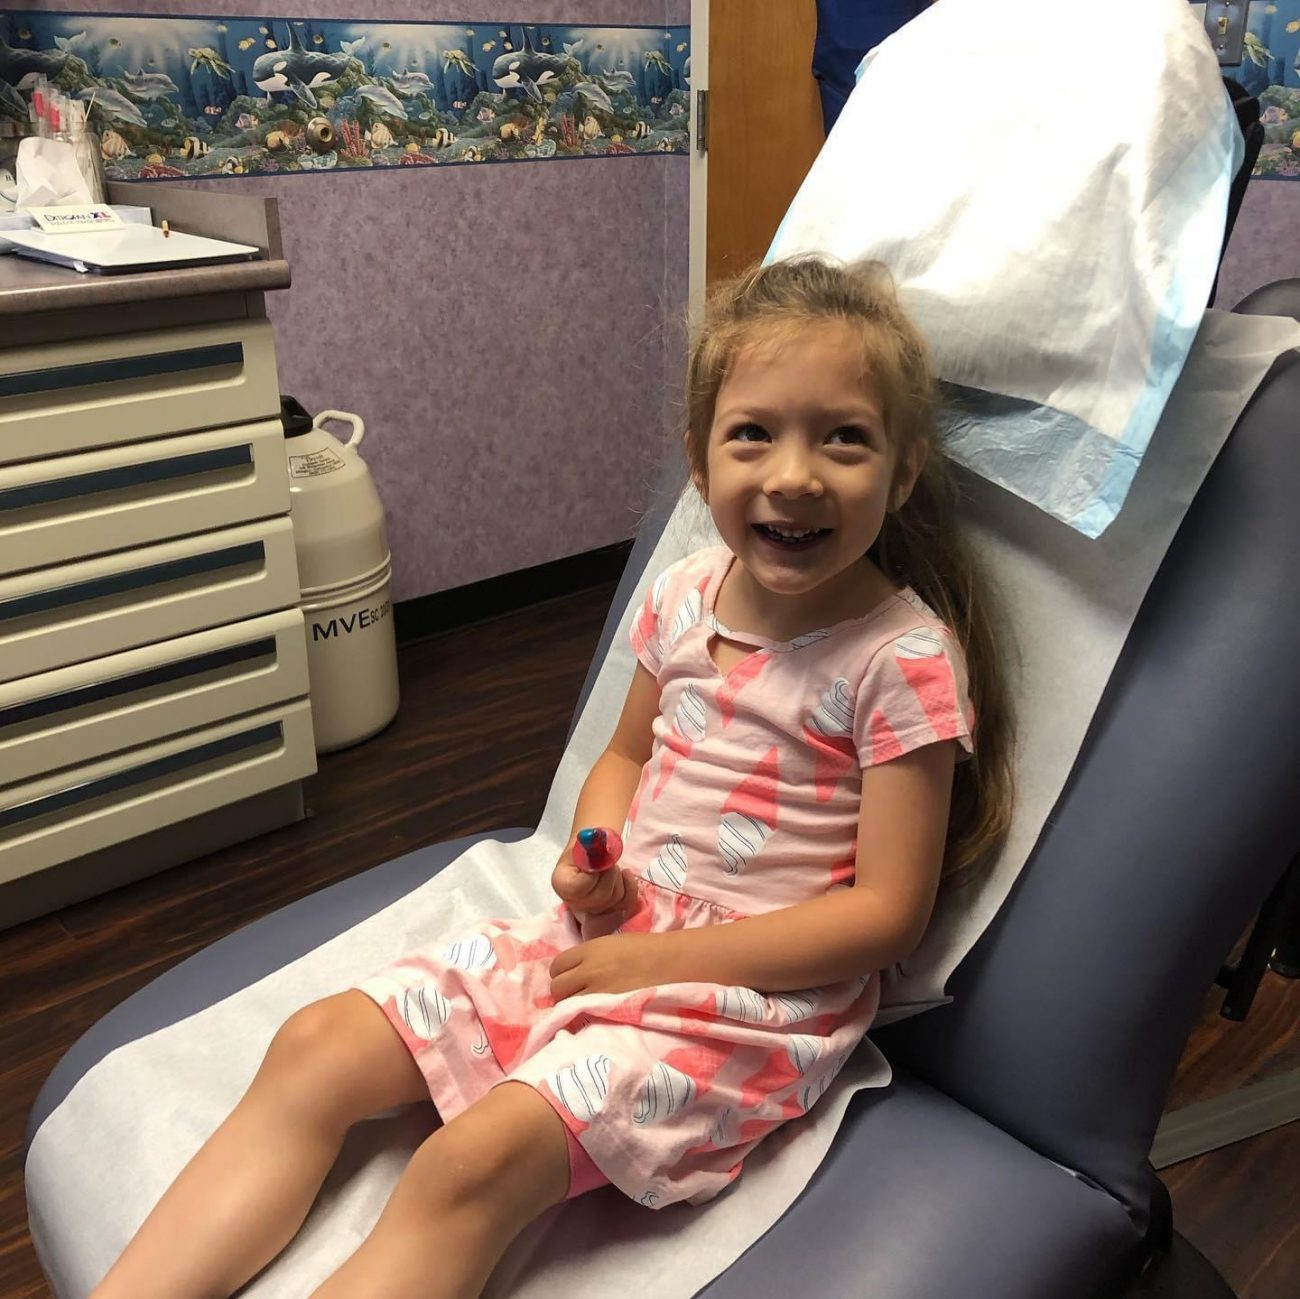 Little girl patient sits on exam chair and smiles